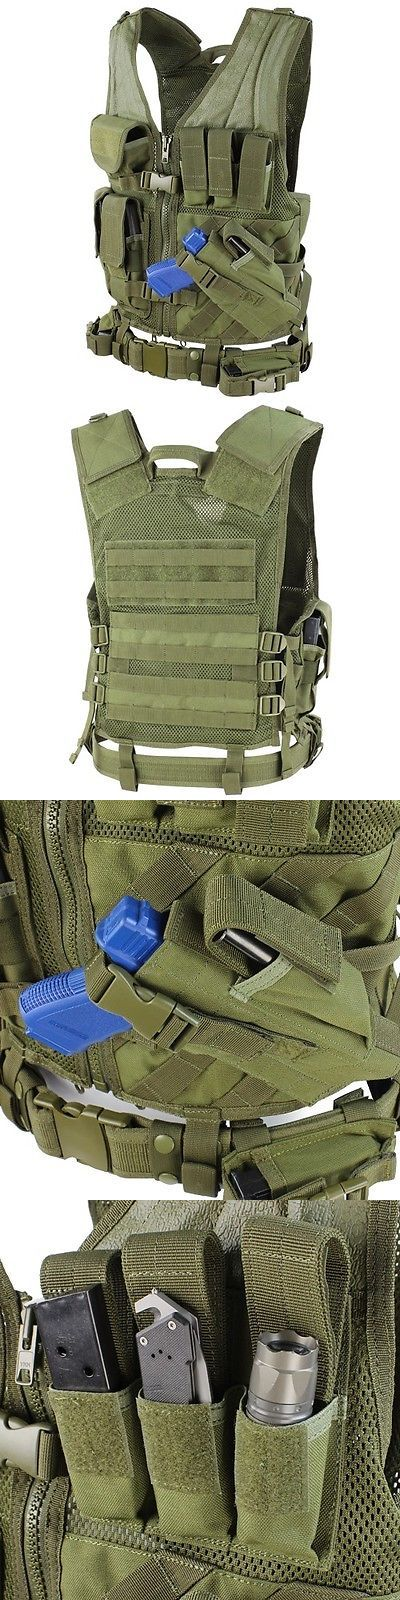 Chest Rigs and Tactical Vests 177891: Condor Xl/Xxl Military Cross Draw Tactical Chest Rig Vest W/ Holster Pouch Od BUY IT NOW ONLY: $62.95